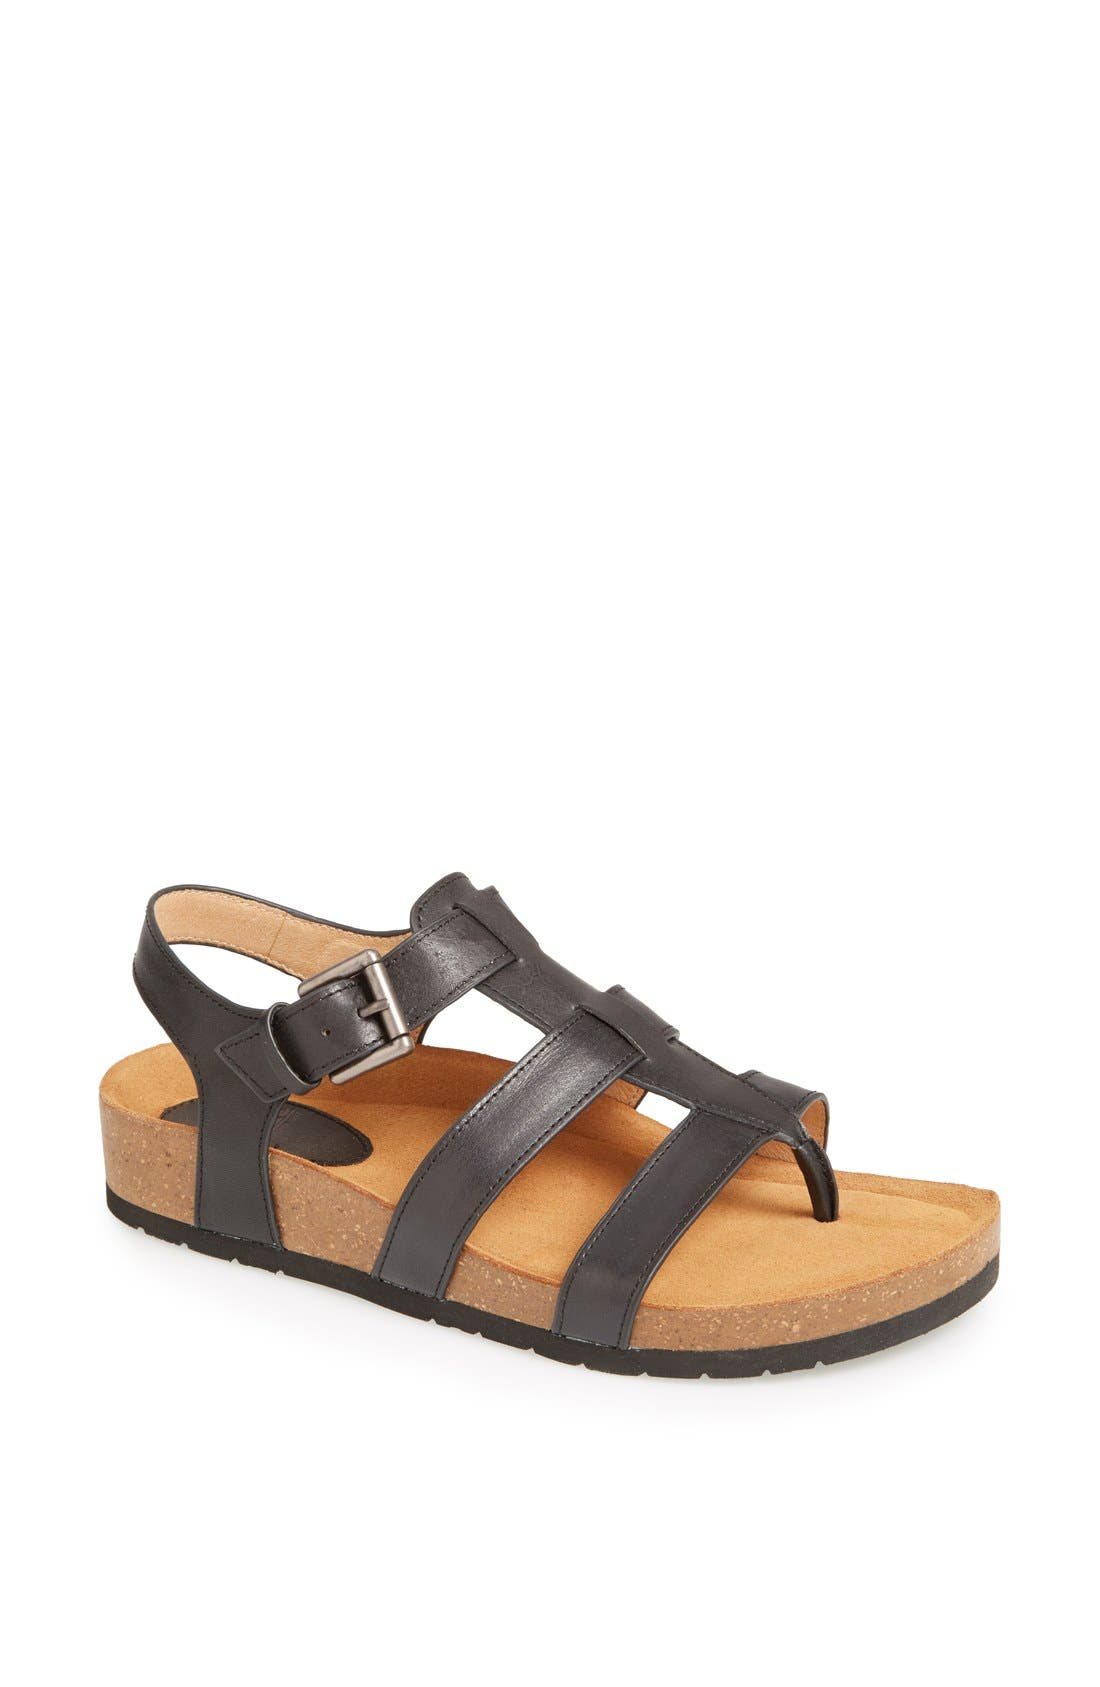 Main Image - Söfft 'Burdette' Leather Sandal